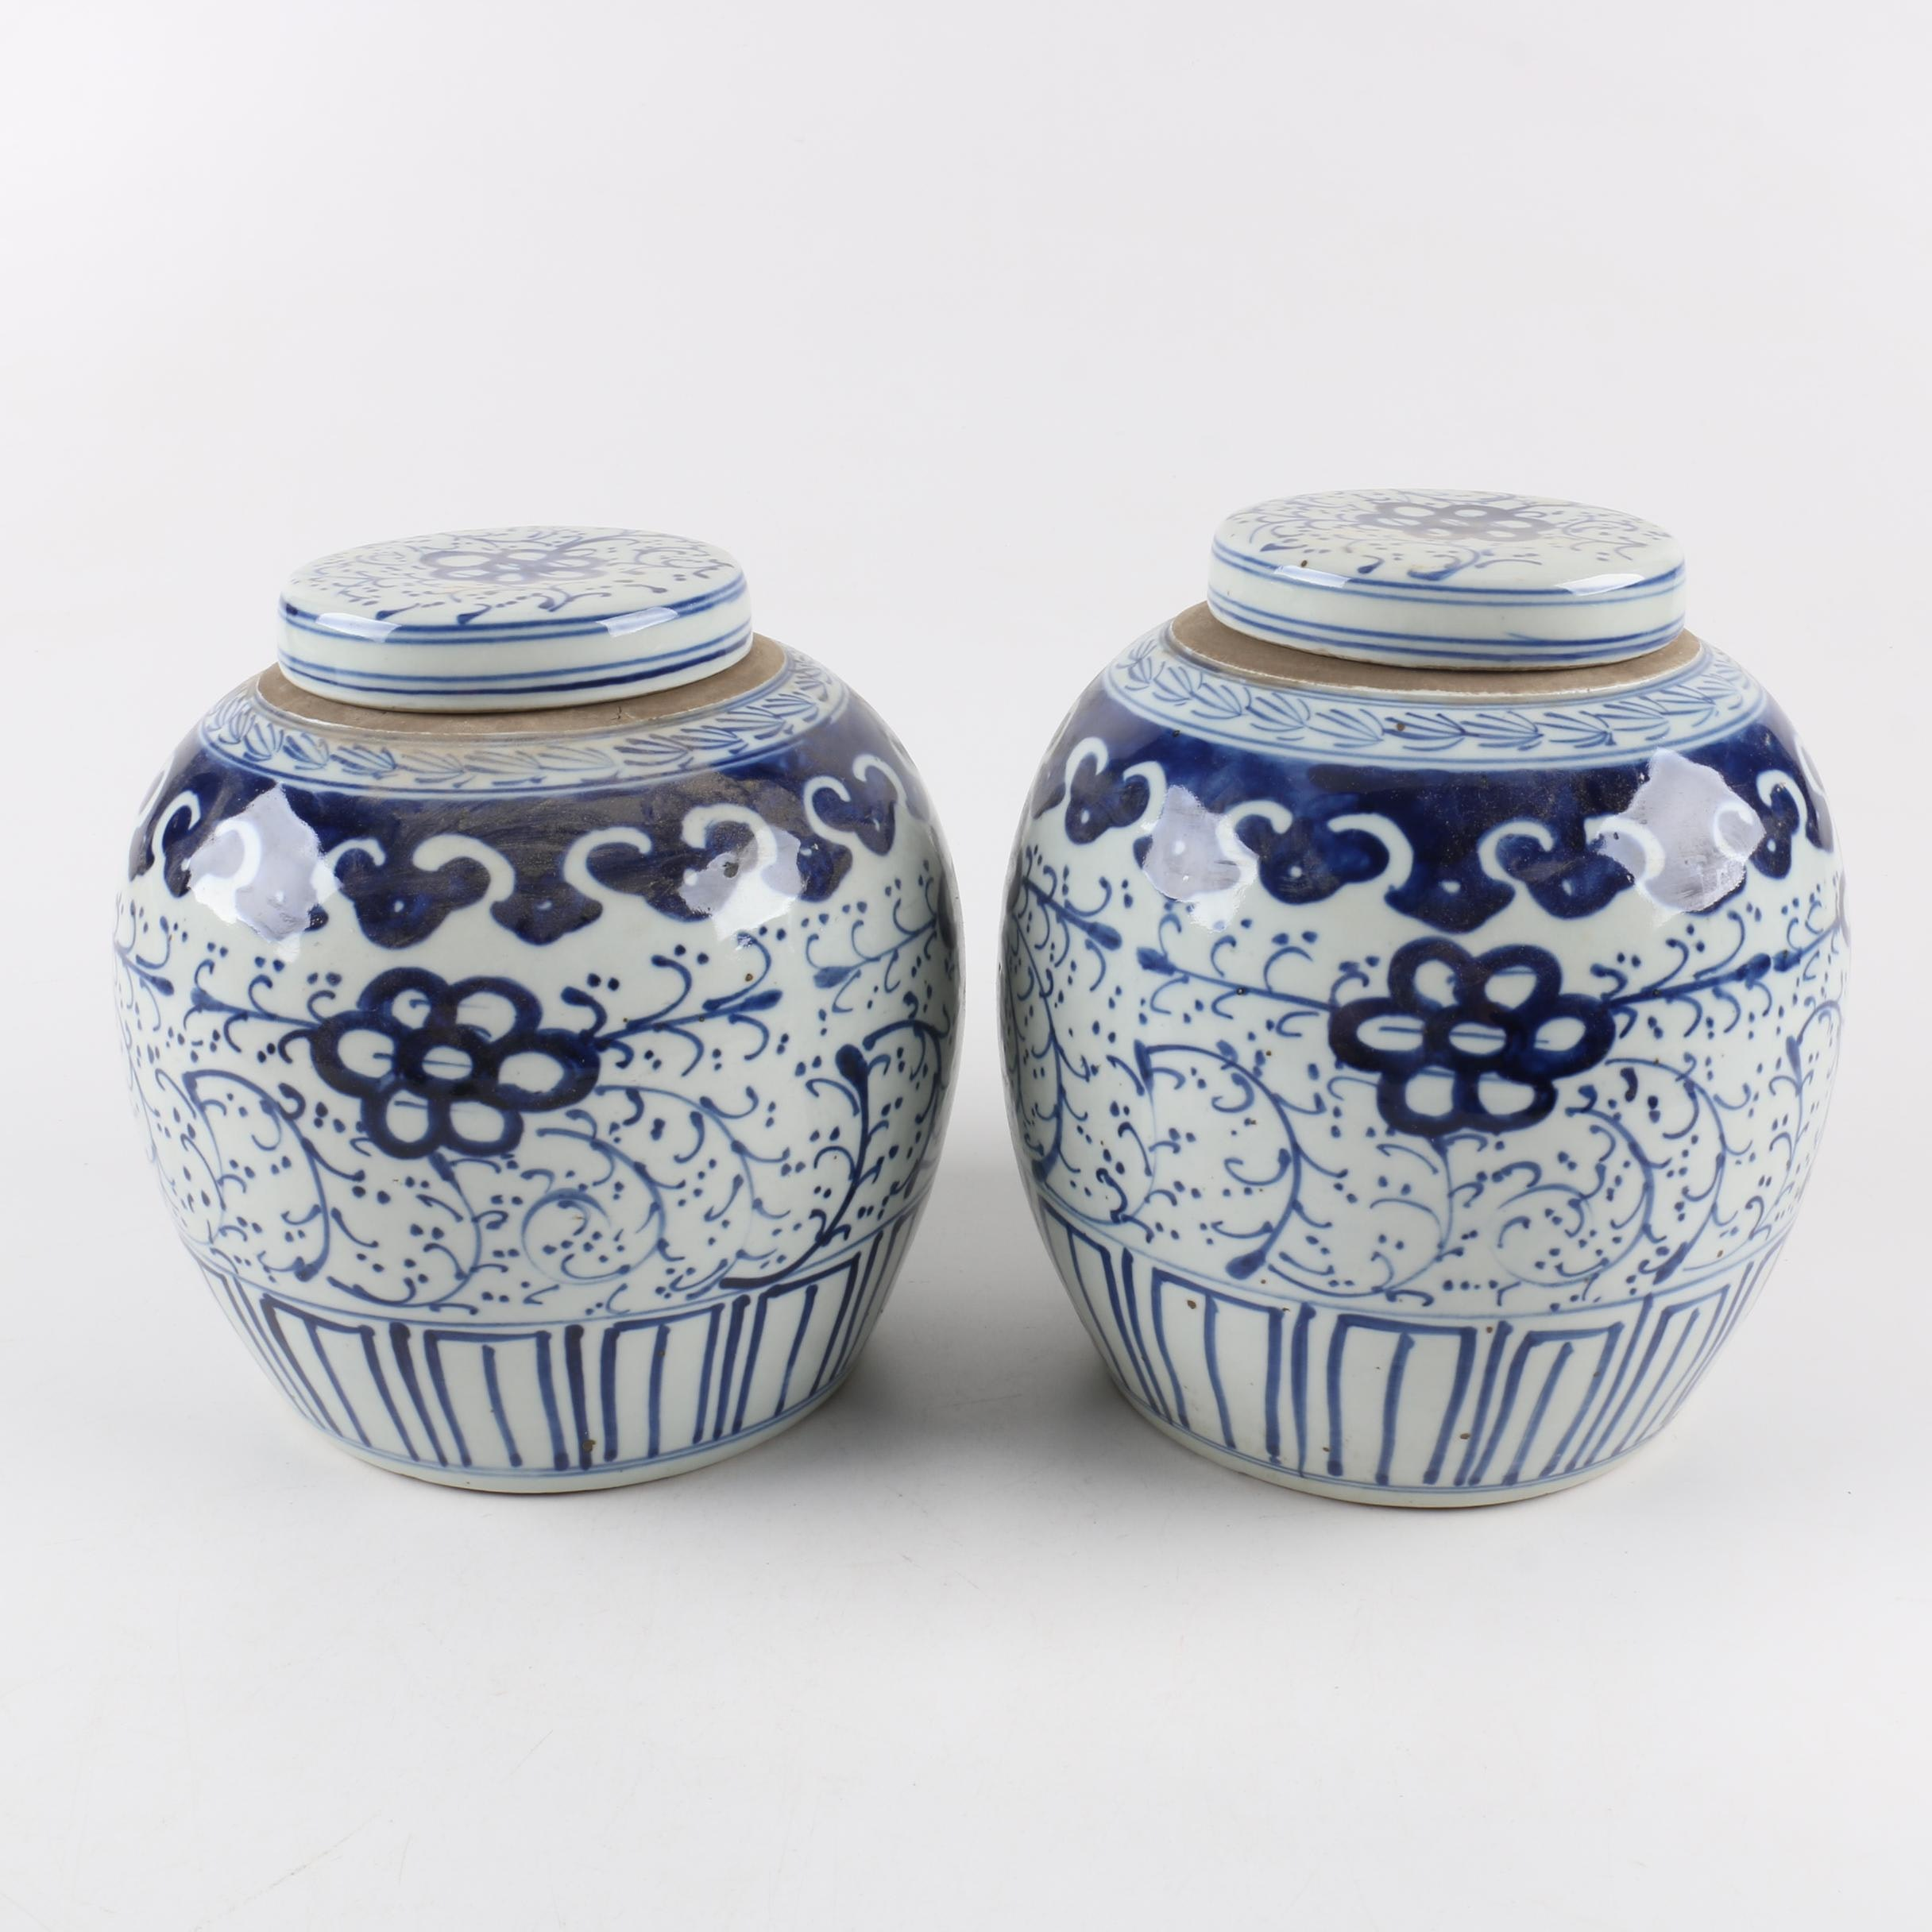 Chinese Ceramic Ginger Jars with Lids